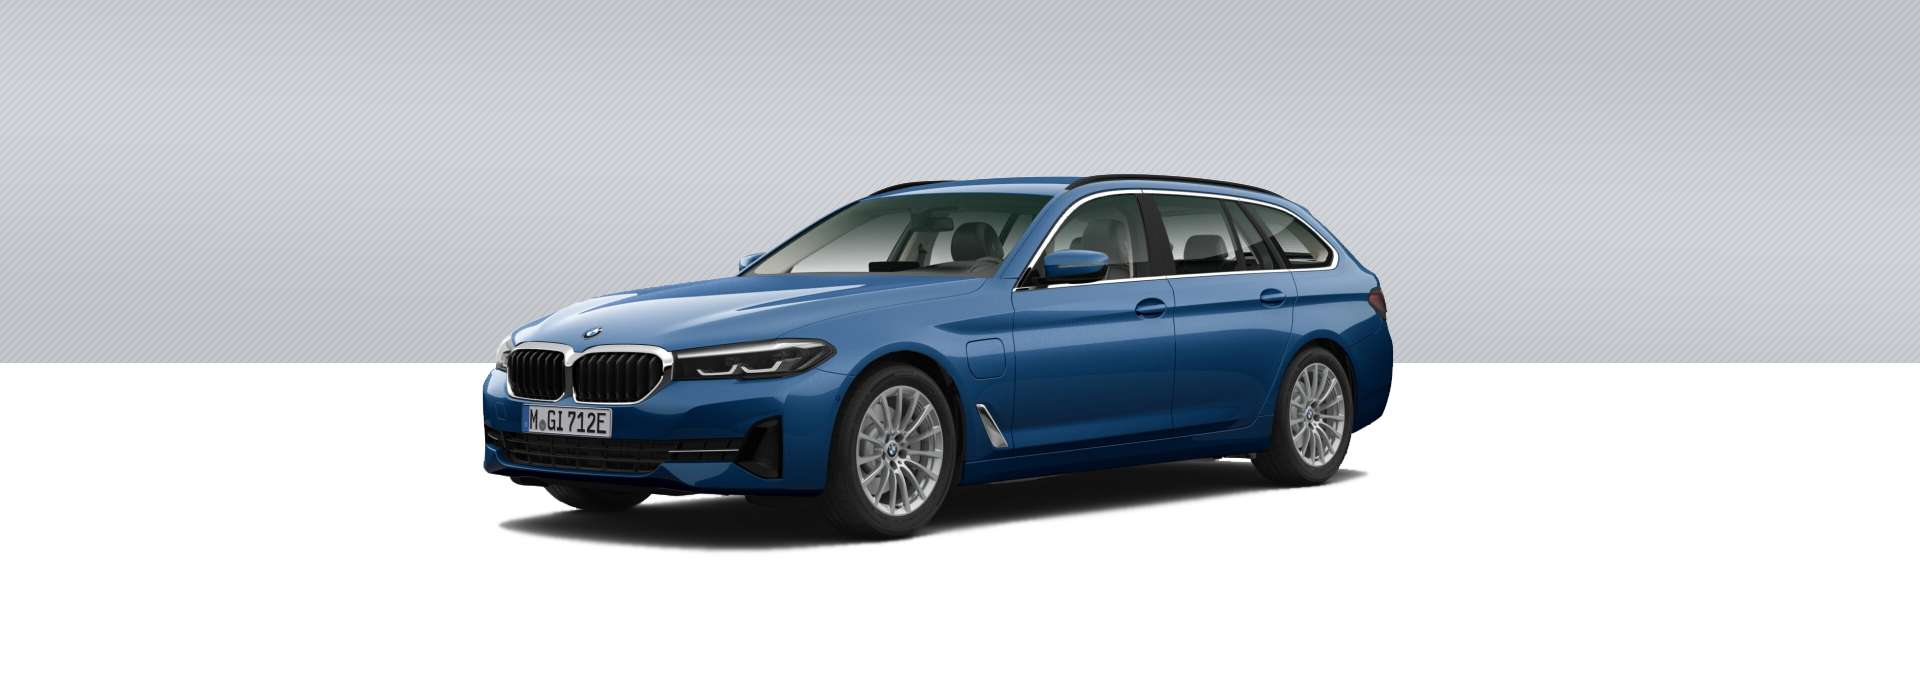 BMW Nuevo Serie 5 Touring Híbrido Enchufable